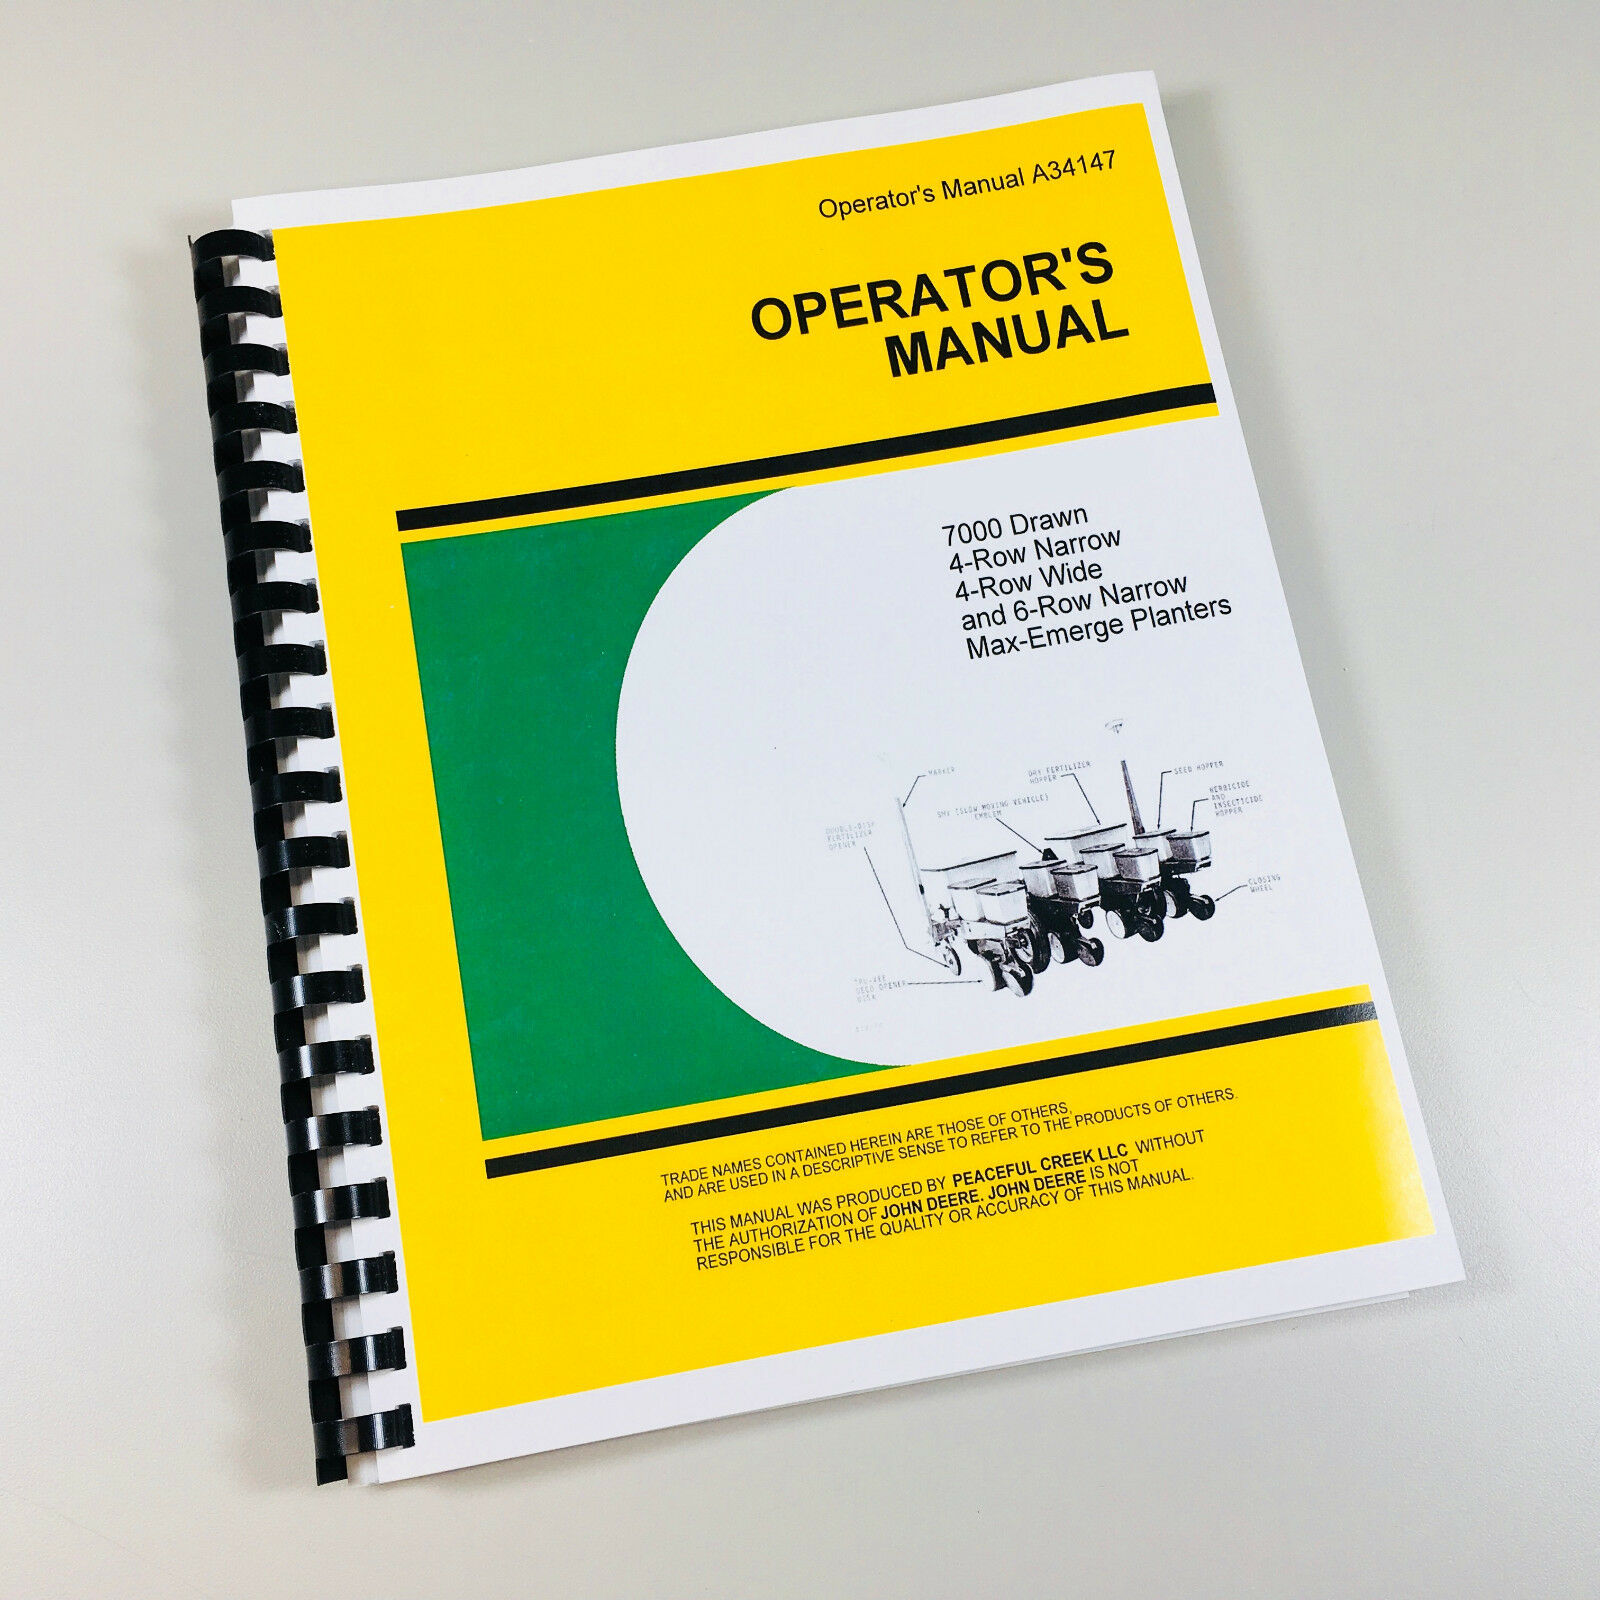 John deere planter operators manual 7000 drawn, 6-row wide, 8.